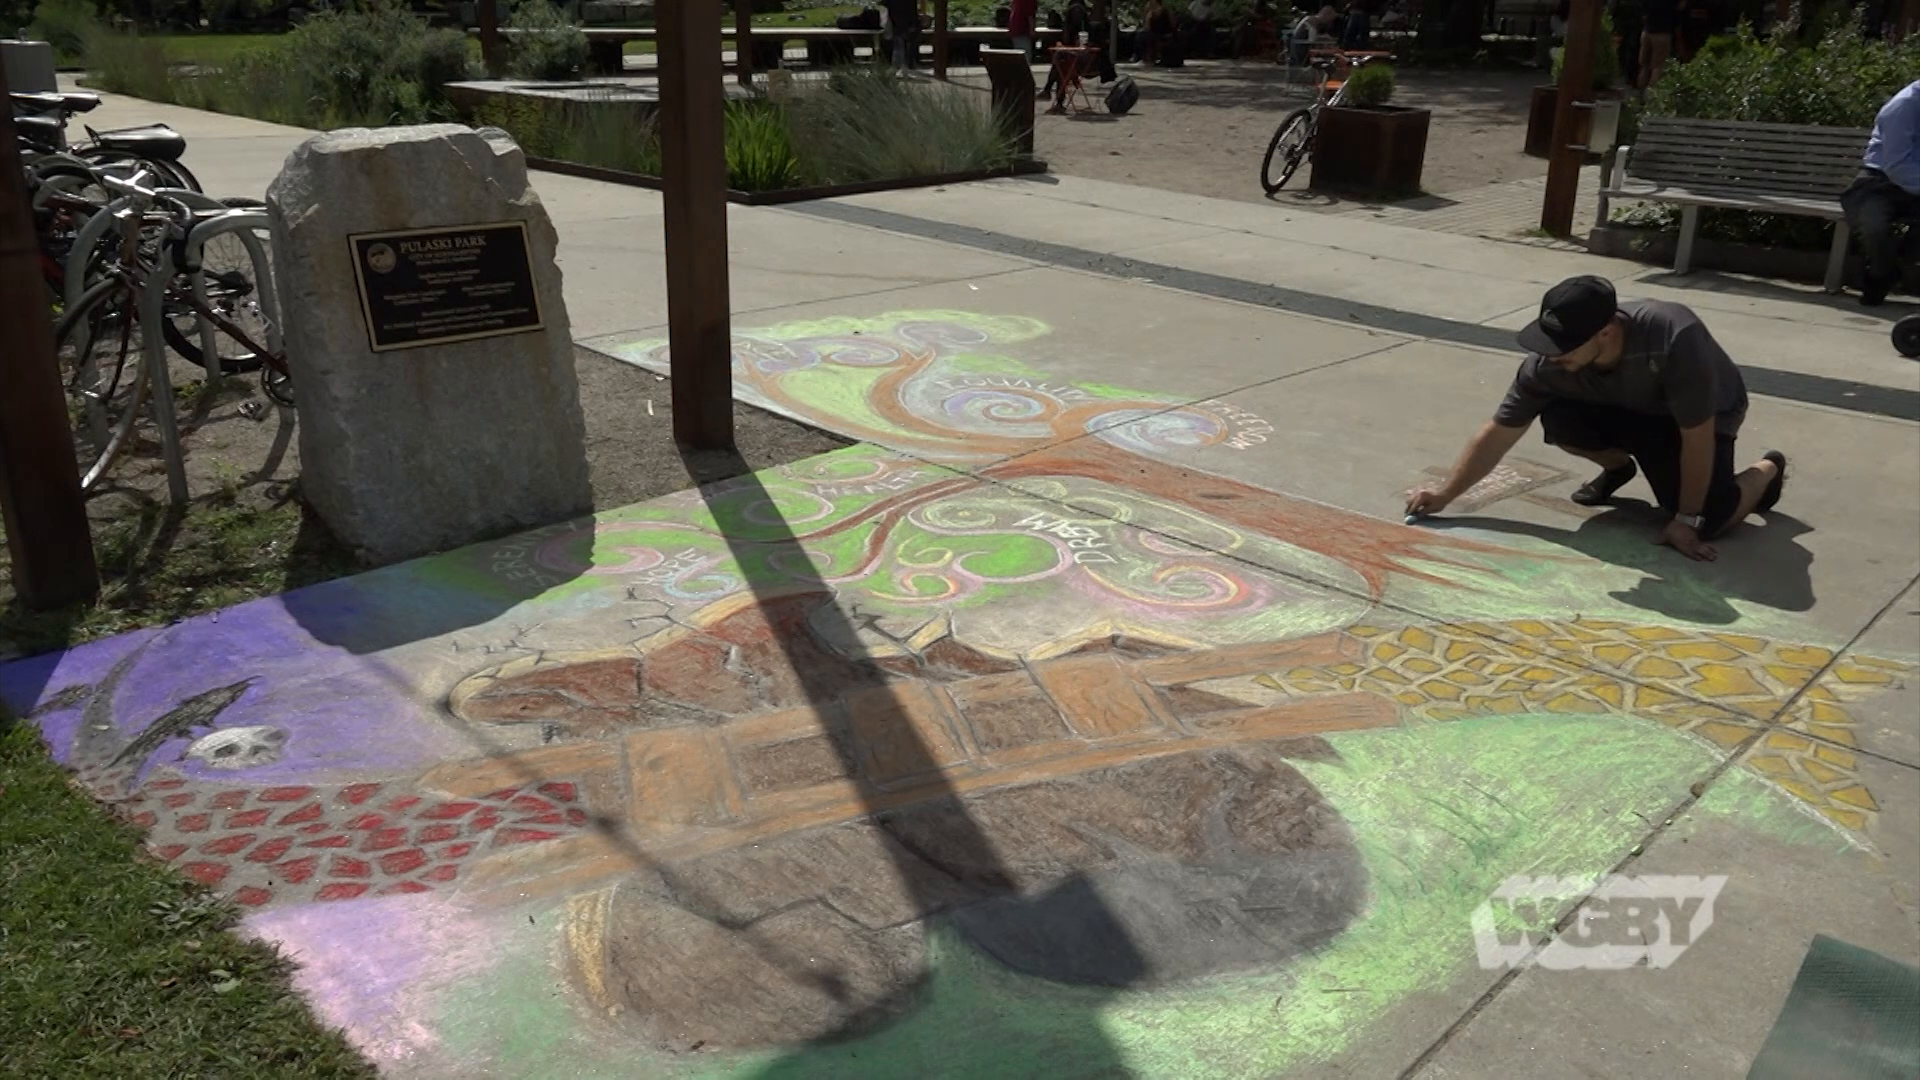 Visit the 10th Annual Downtown Northampton Chalk Art Festival and discover the inspiration behind the works dotting sidewalks in the Paradise City.